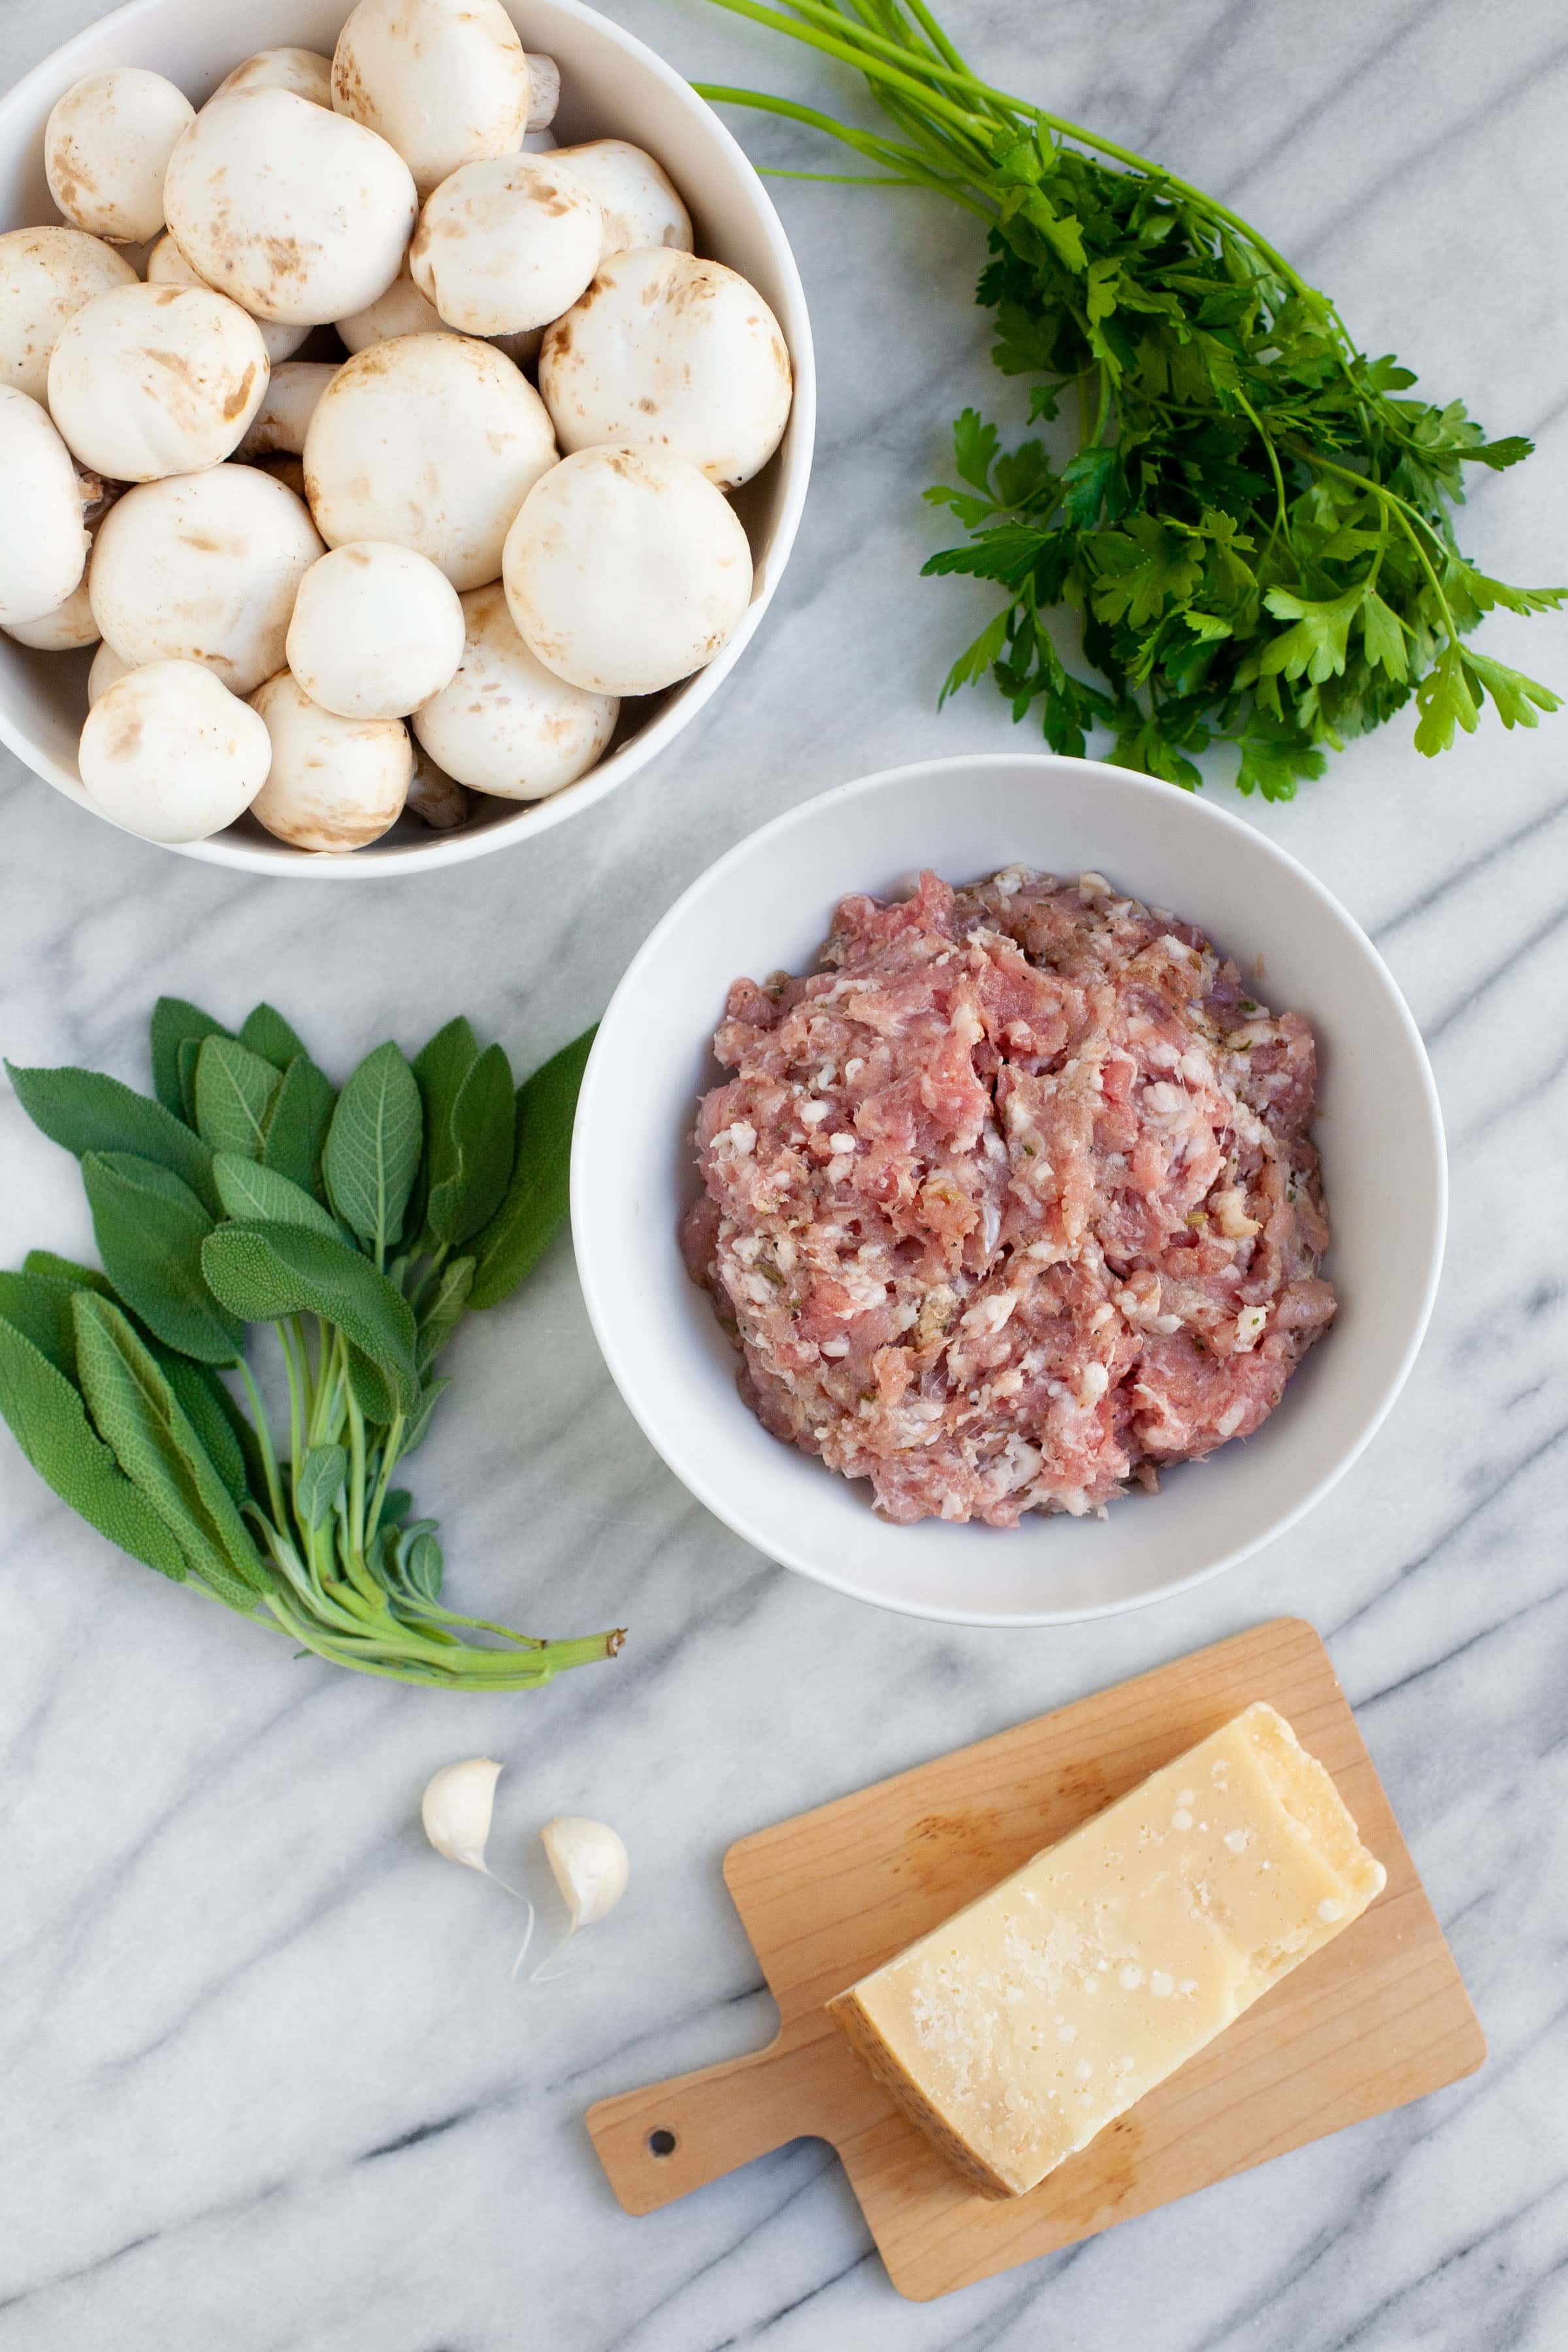 Ingredients for Parmesan and Sausage Stuffed Mushrooms - Parmesan, herbs, sausage, and button mushrooms